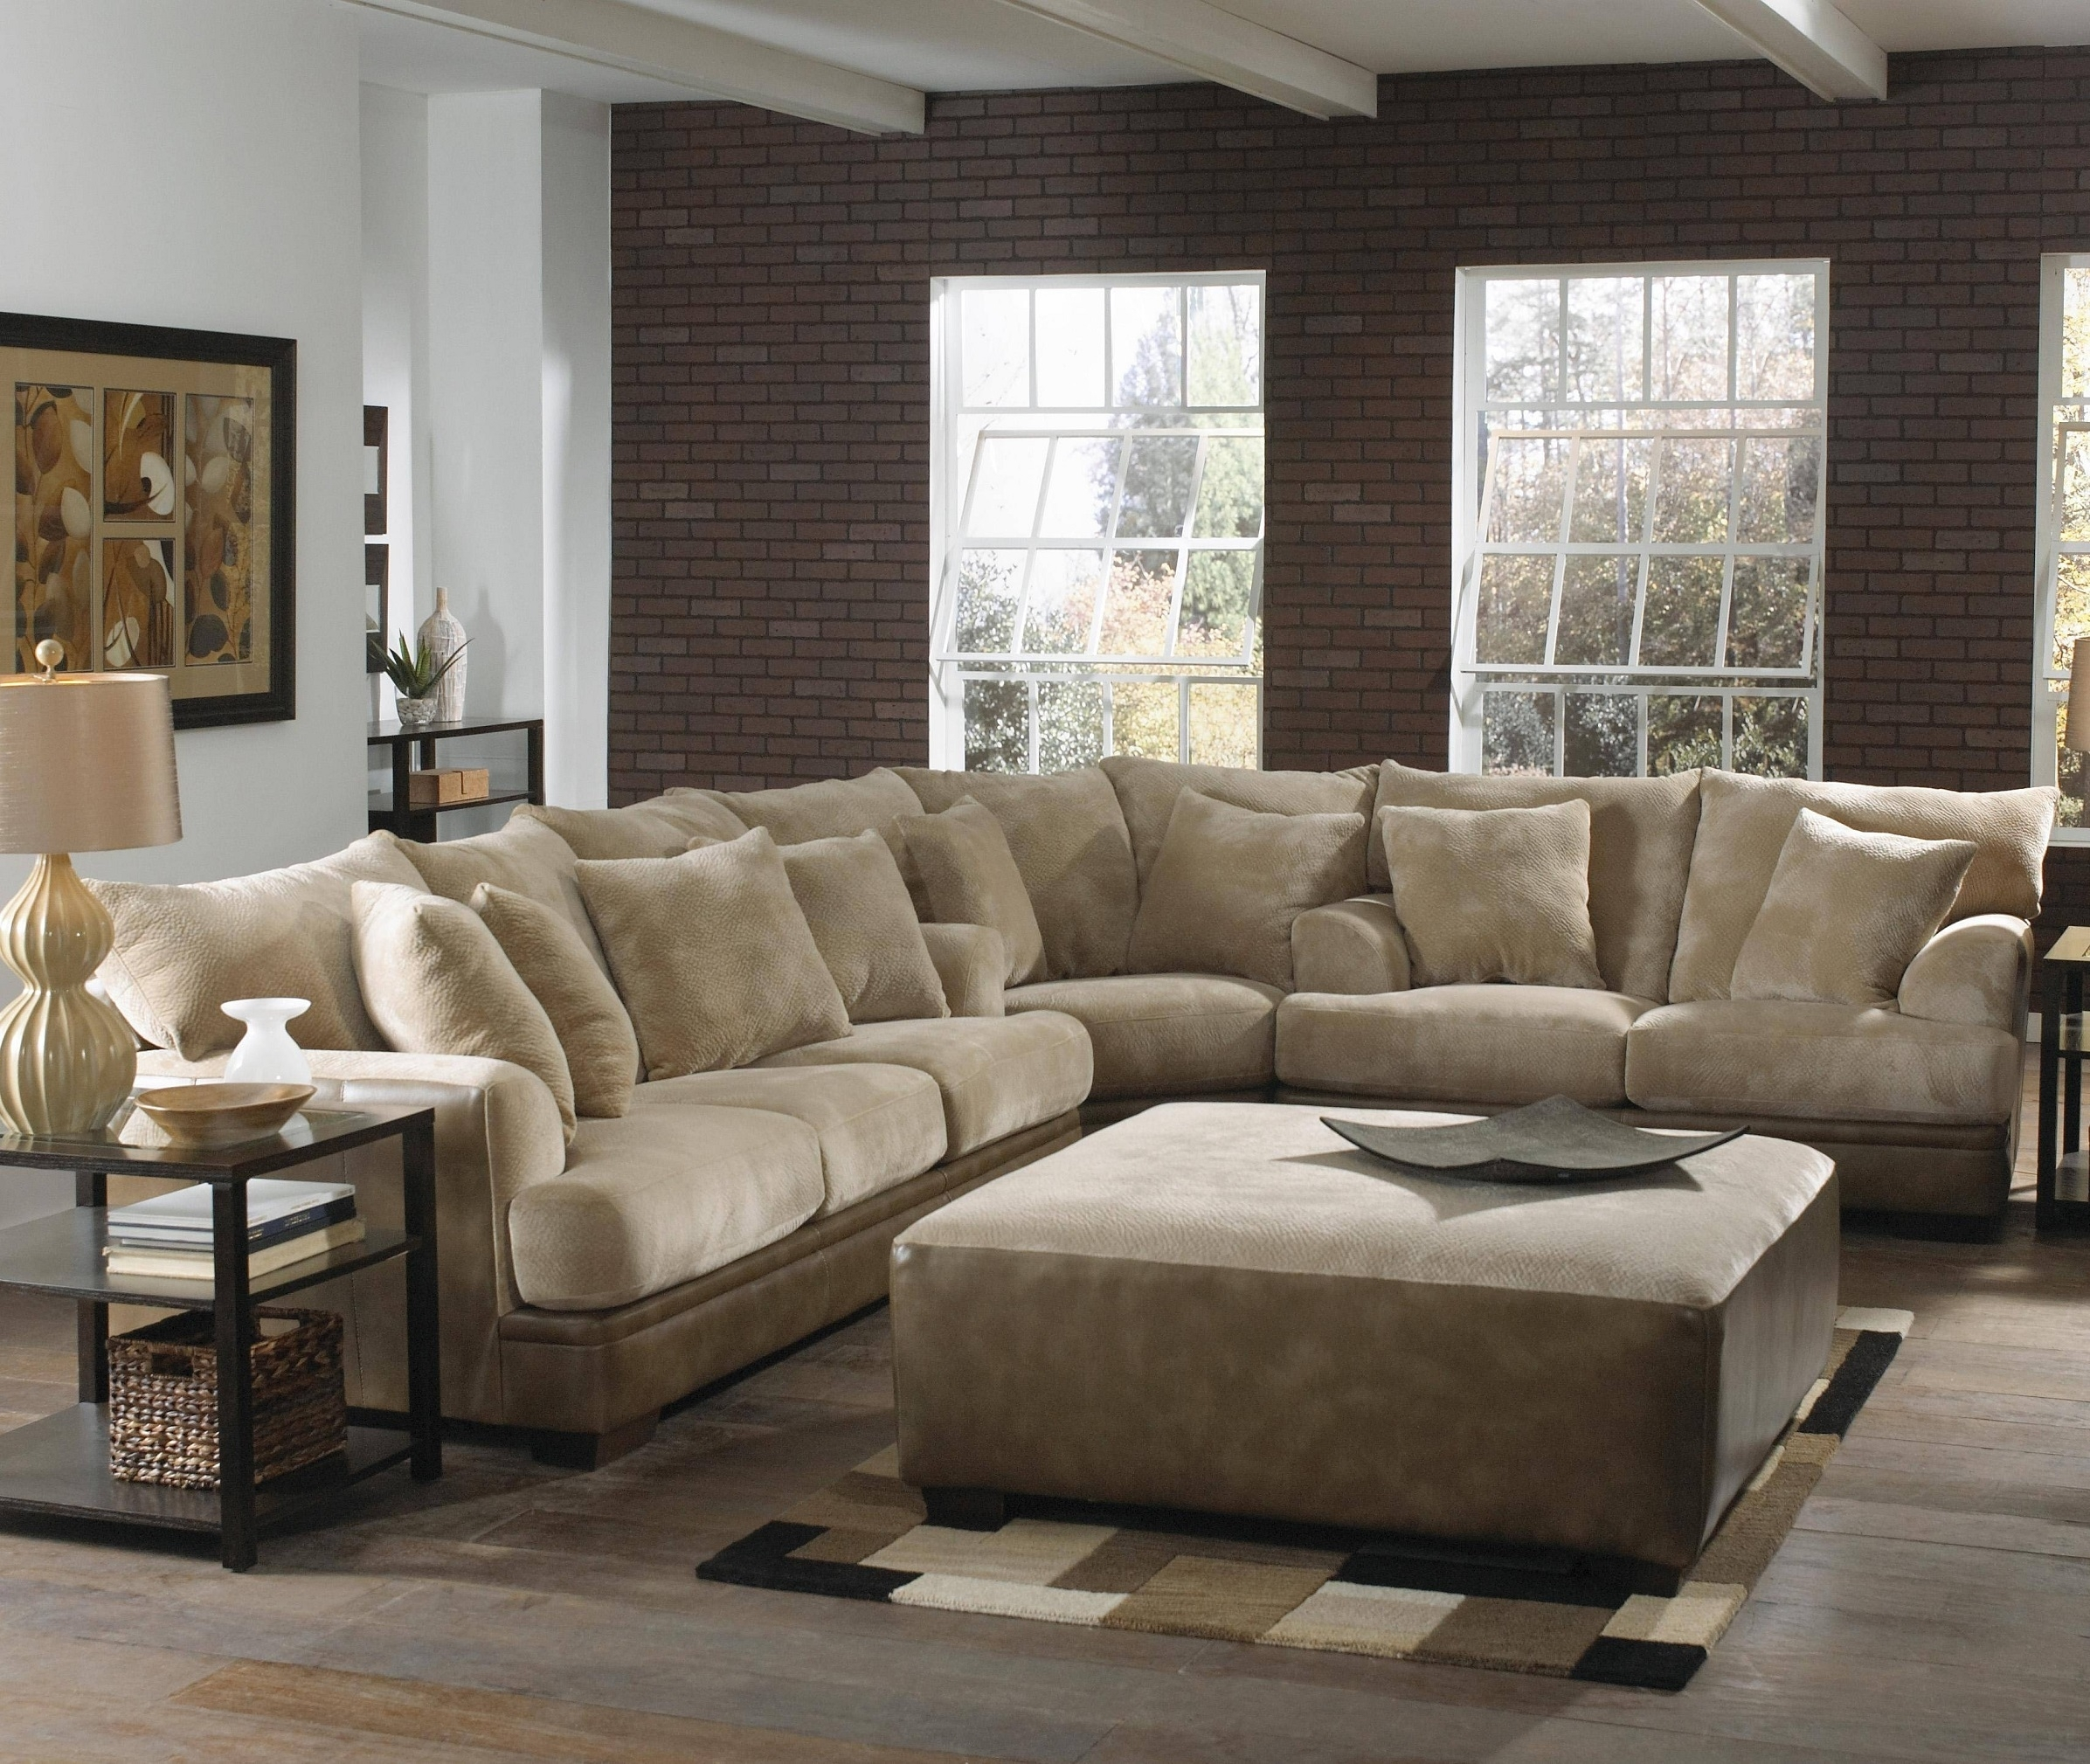 Chairs : Chairs Chair Classy Oversized Reading In Dark Brown Fabric With Grand Furniture Sectional Sofas (View 5 of 10)